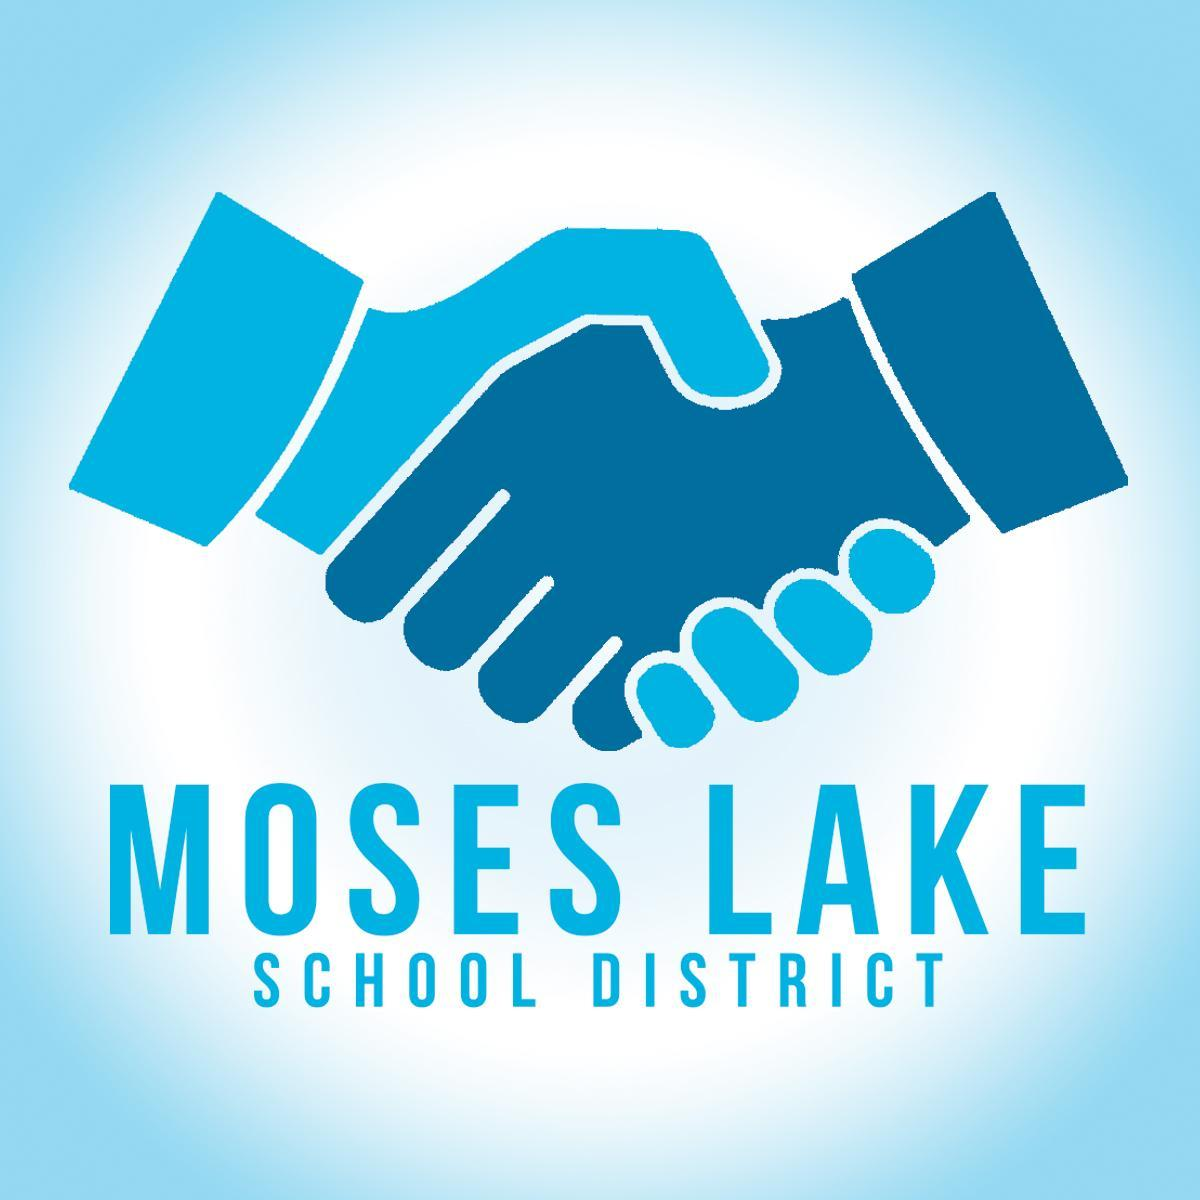 Hands shaking over Moses Lake School District text.